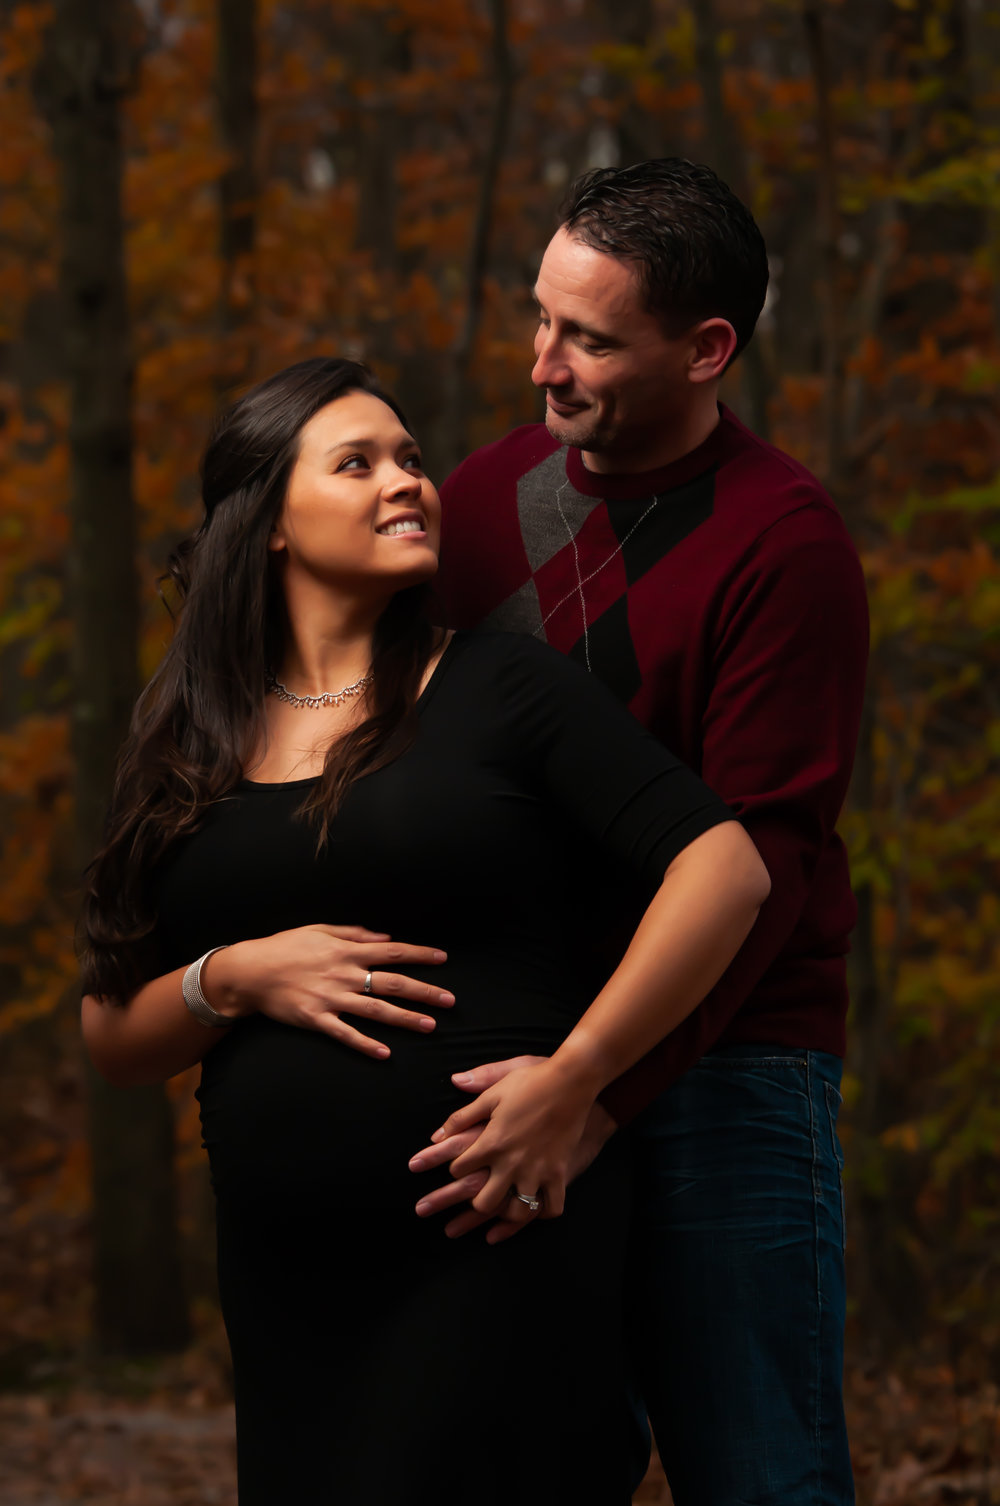 MAternity_FIneArt_CarrieAnneGonzalez_NYPhotography_CarrieWestonStudios_Portrait-6704.jpg